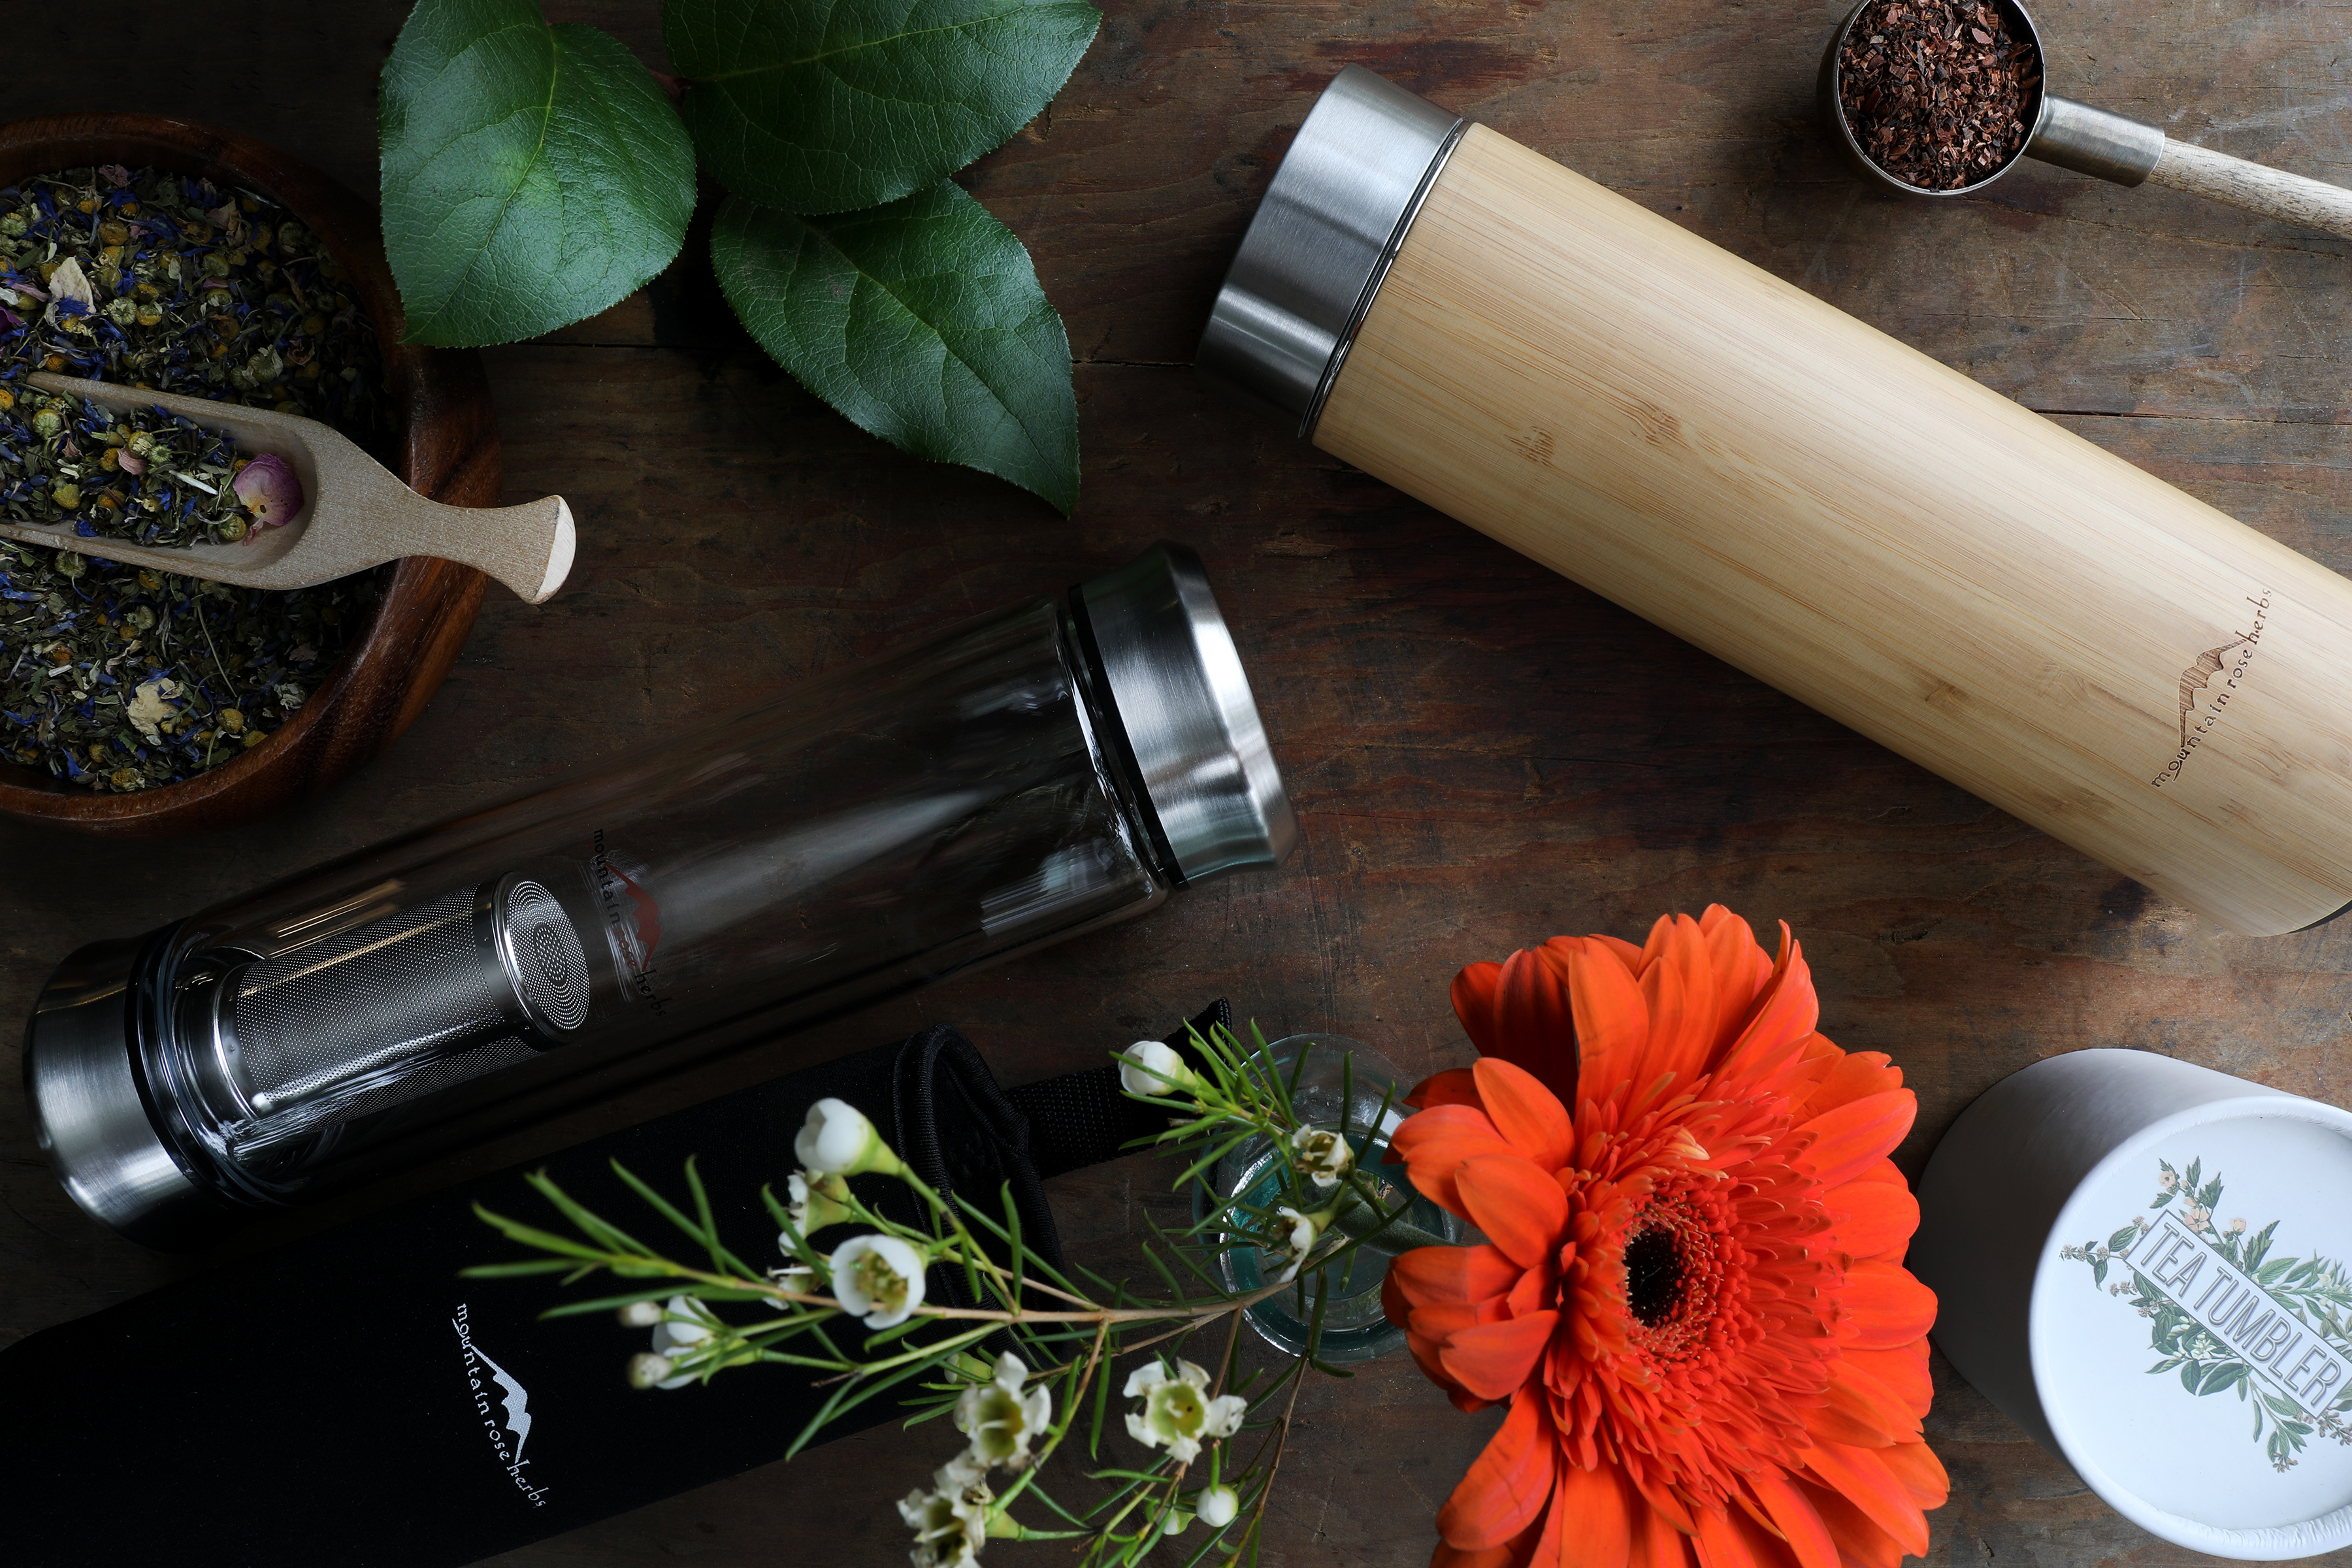 Wooden and glass hot beverage containers sirrounded by colorful flowers, plants and herbal teas.